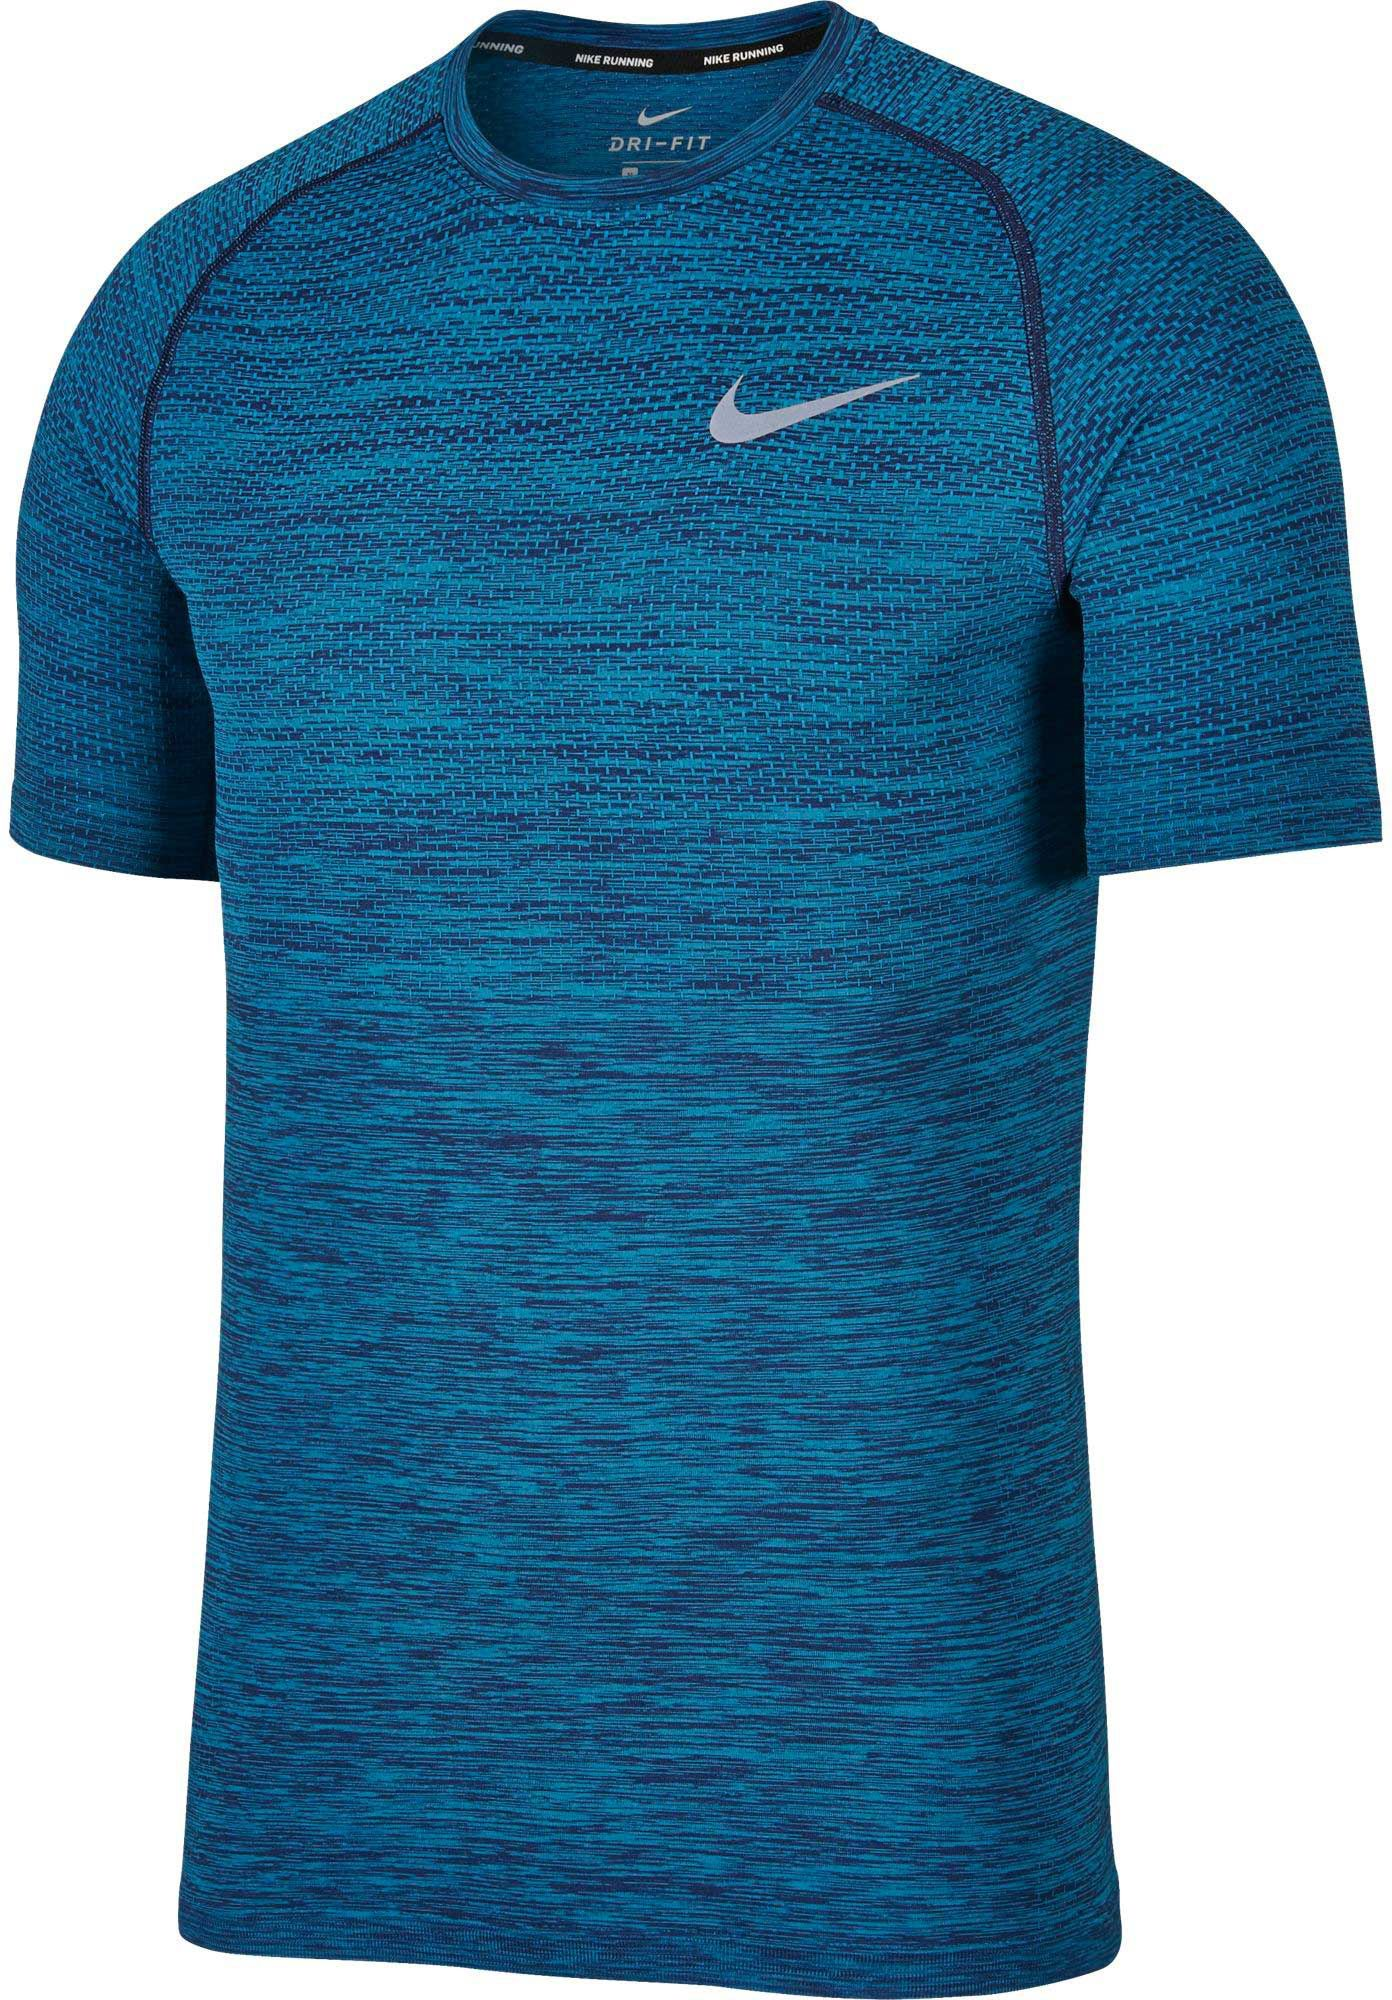 cfb4a28571 Nike Men's Dry Knit Short Sleeve Printed Running Shirt, Size: Medium,  Binary Blue/Lt Blue Fury